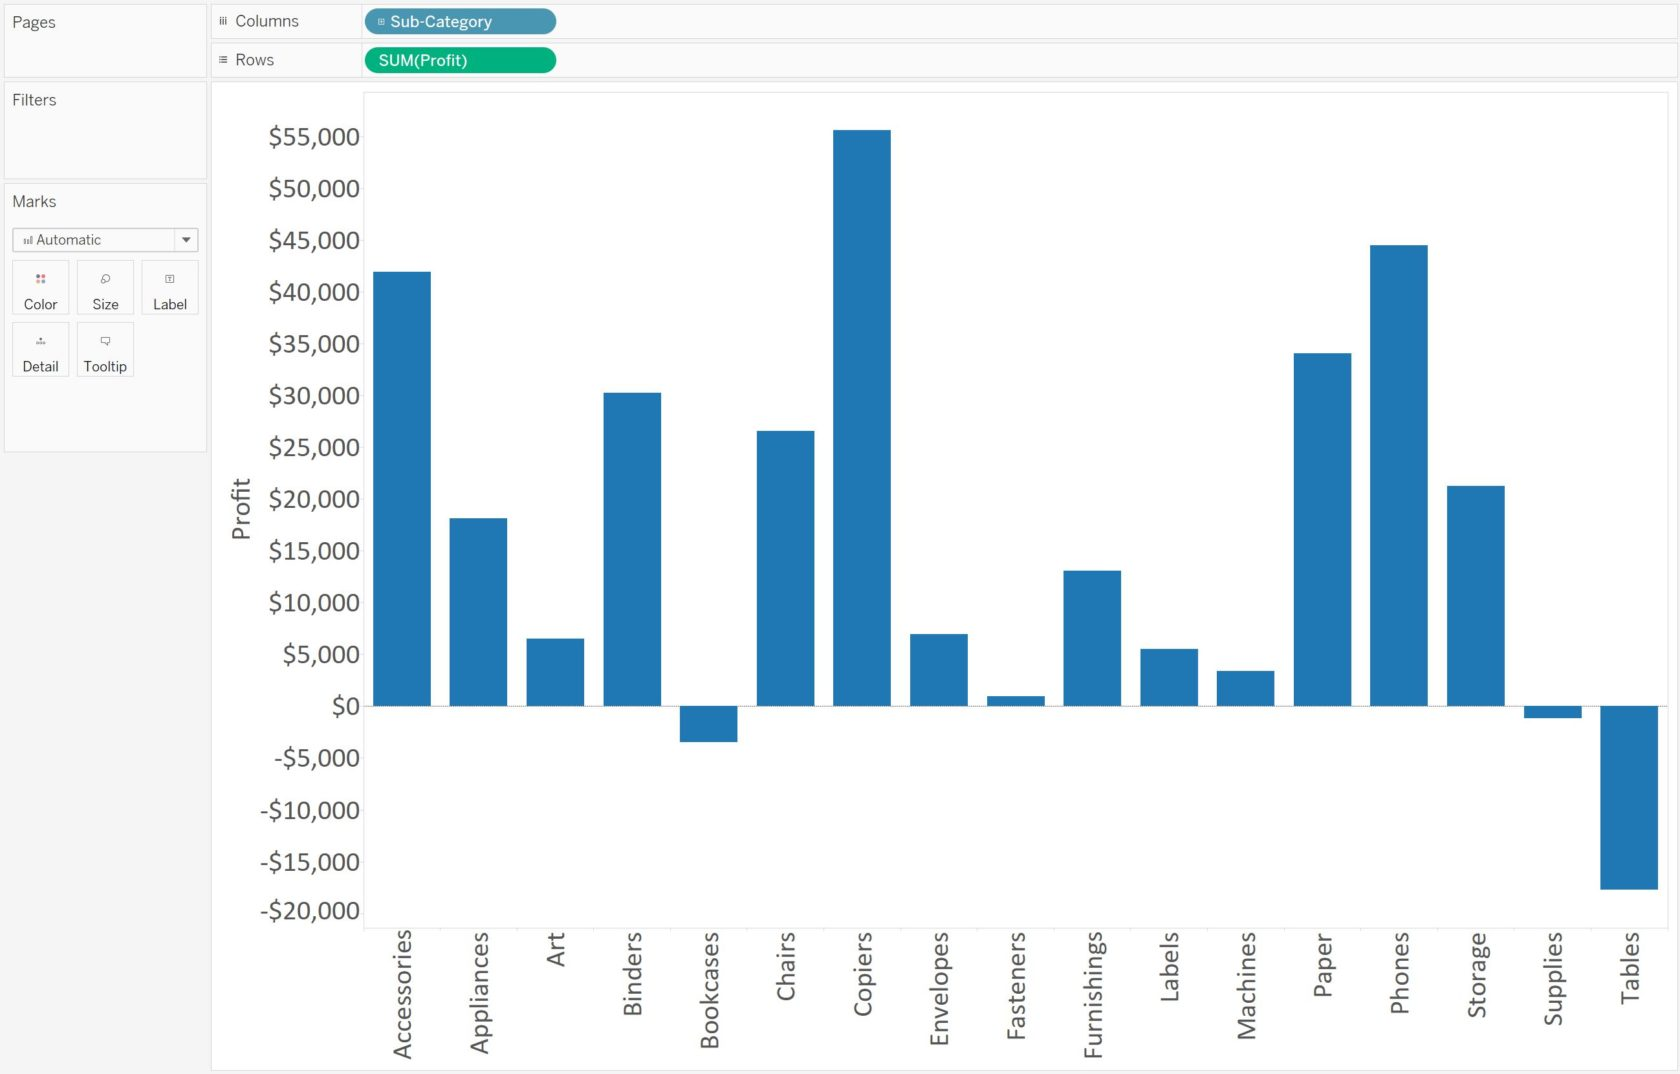 Tableau Bar Chart Profit by Sub-Category